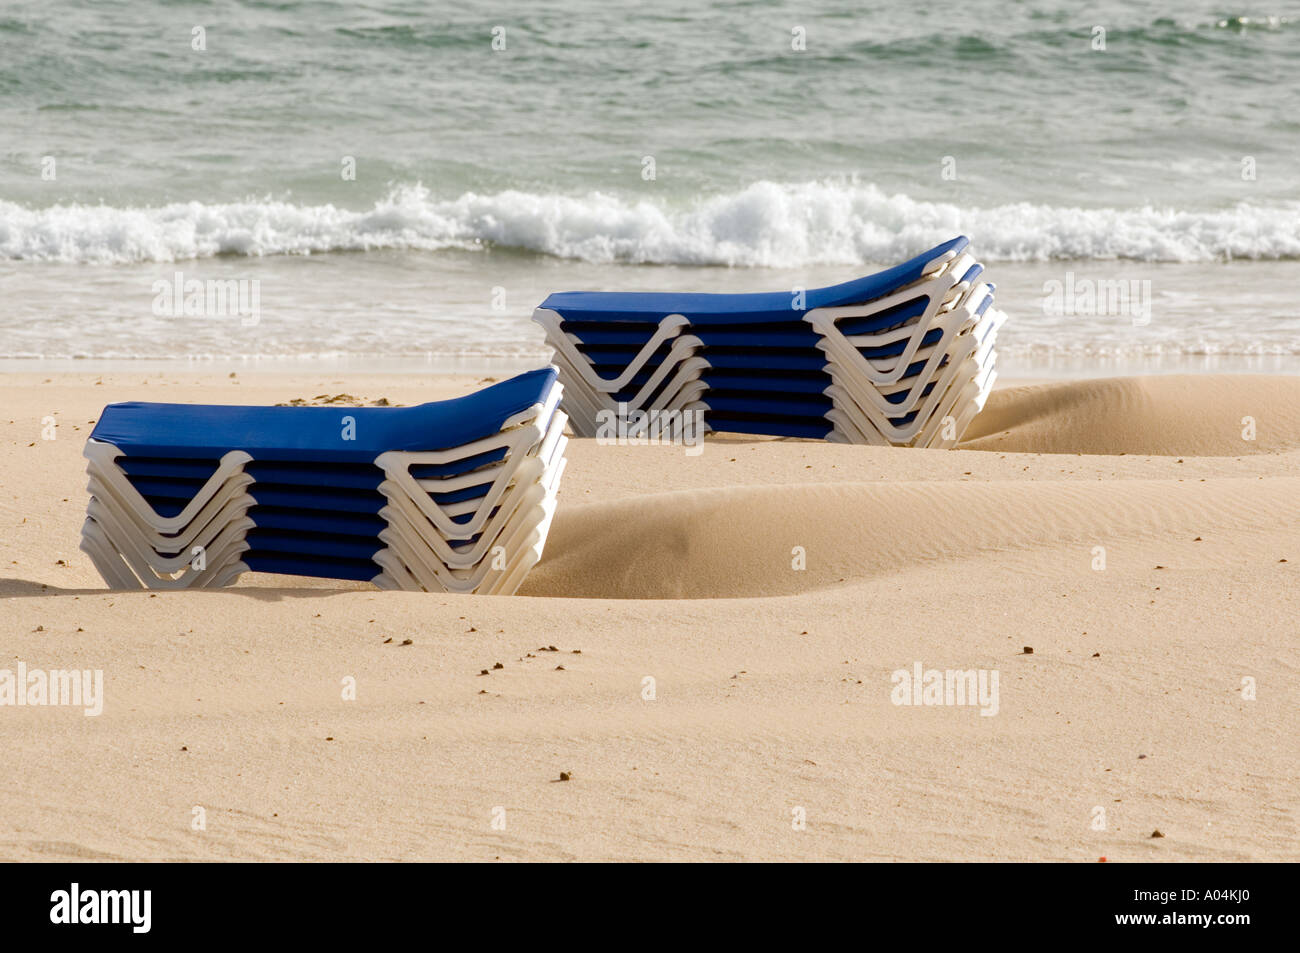 White Sun Lounge Sun Lounge Blue And White Sunbeds Stock Photo 5644895 Alamy